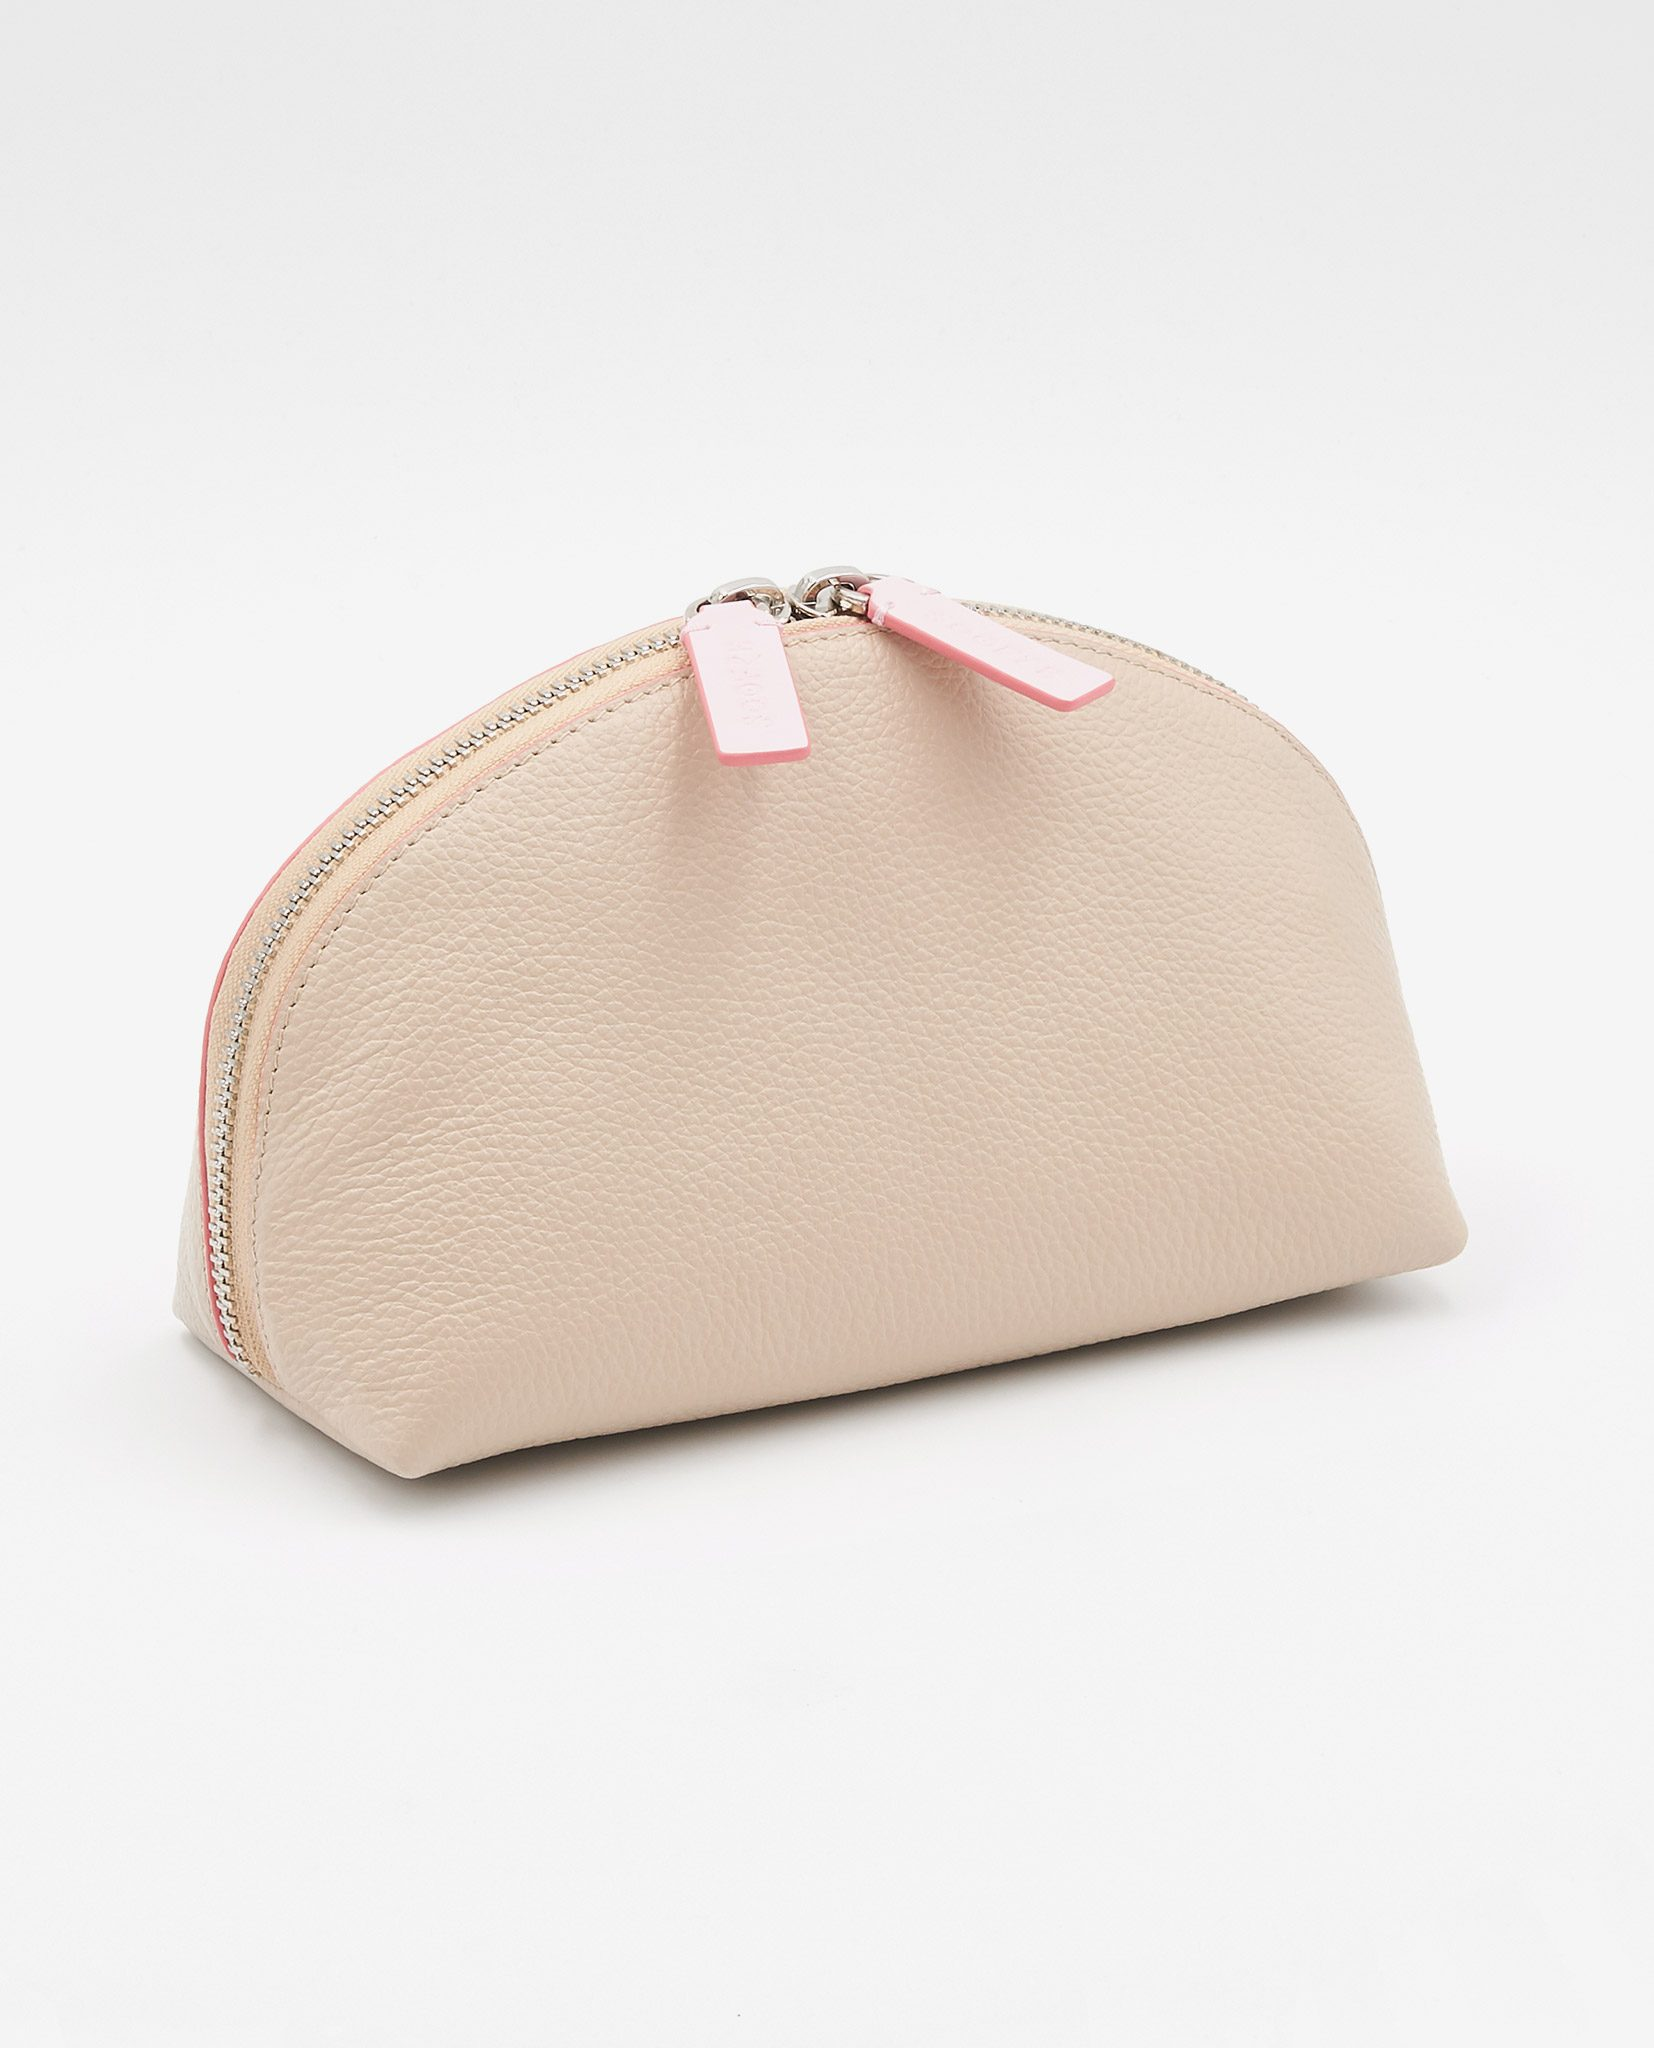 Soofre_Cosmetic-Bag_Cream-Pale-Pink_1